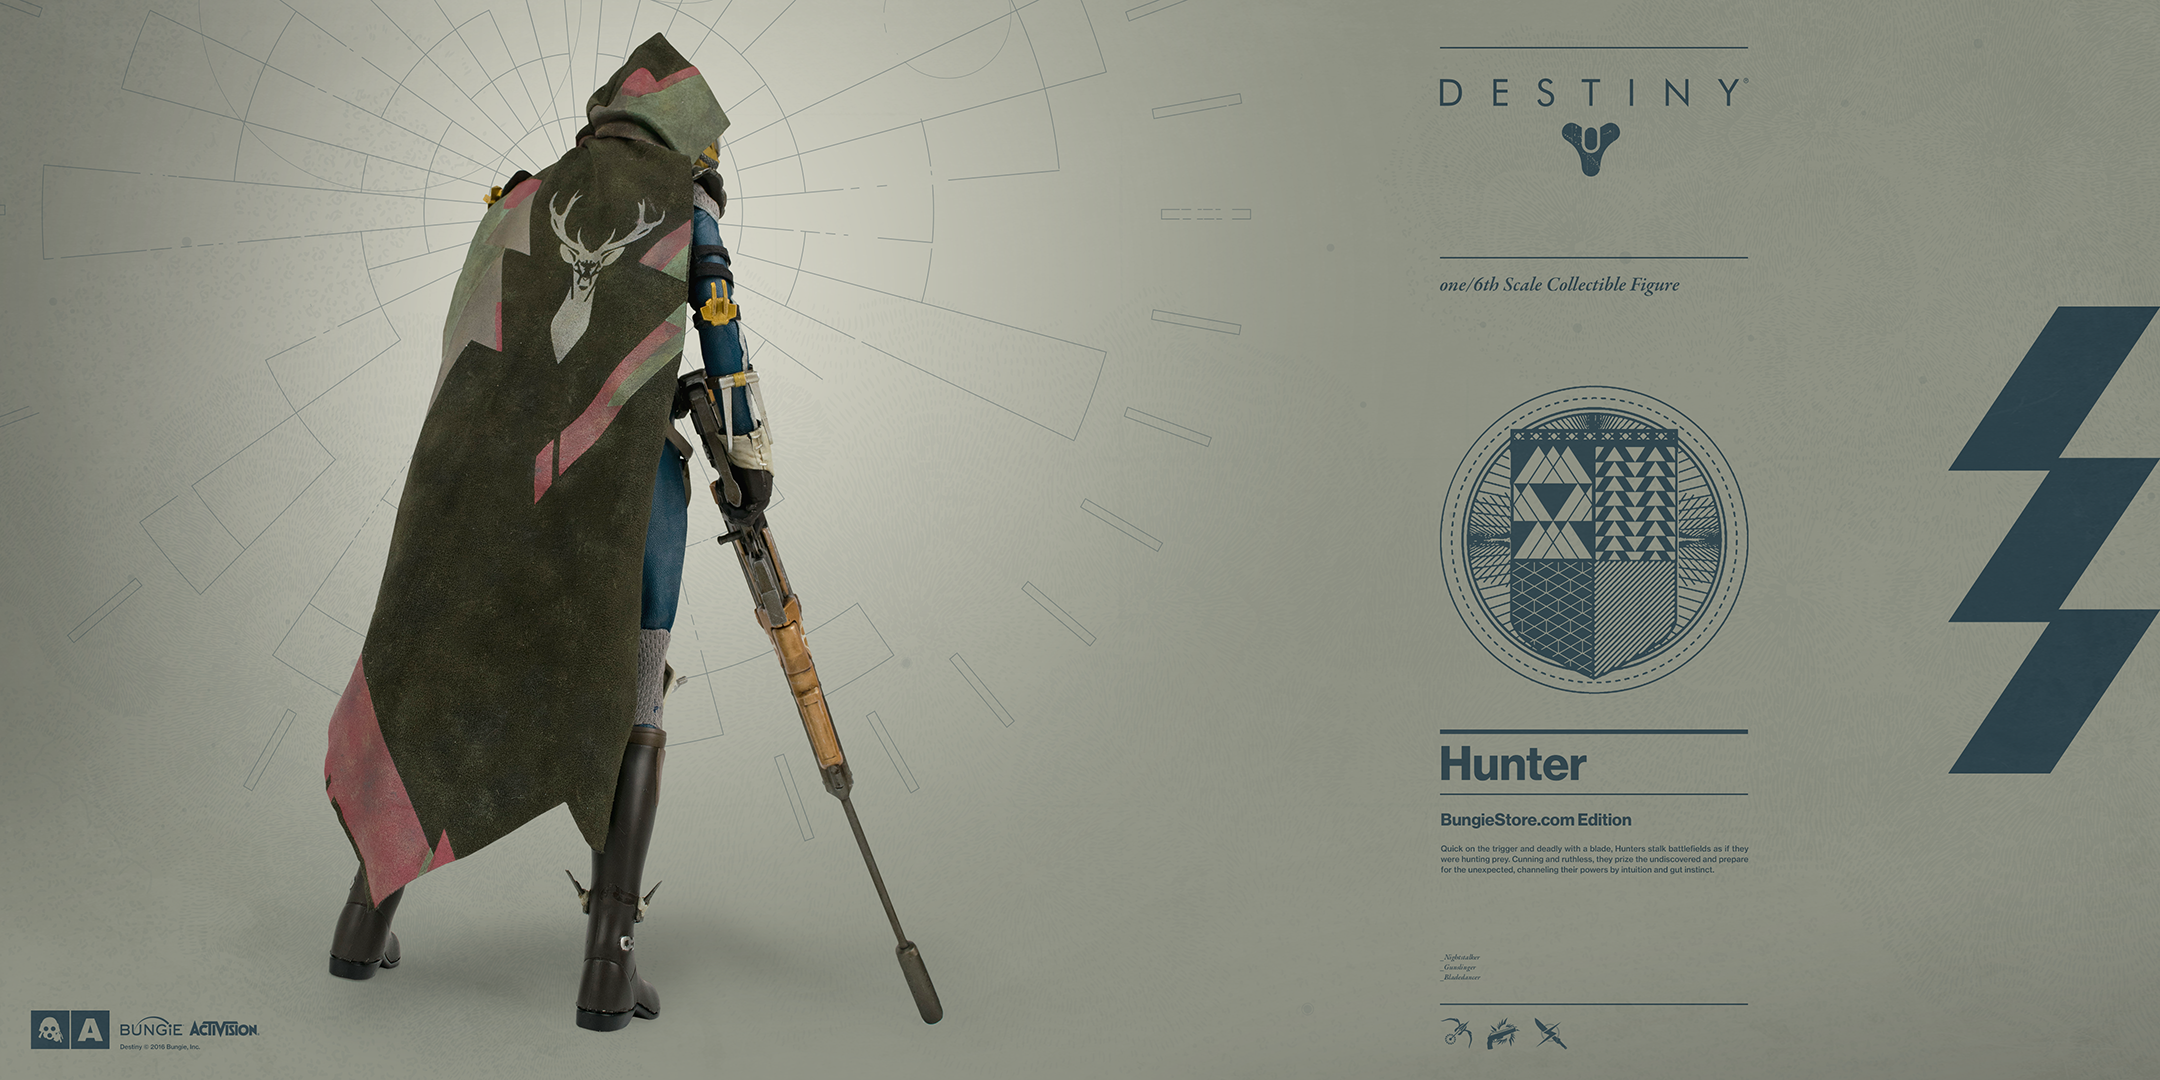 3A_Destiny_Hunter_BungieStoreEdition_Landscape_Left_v002.png